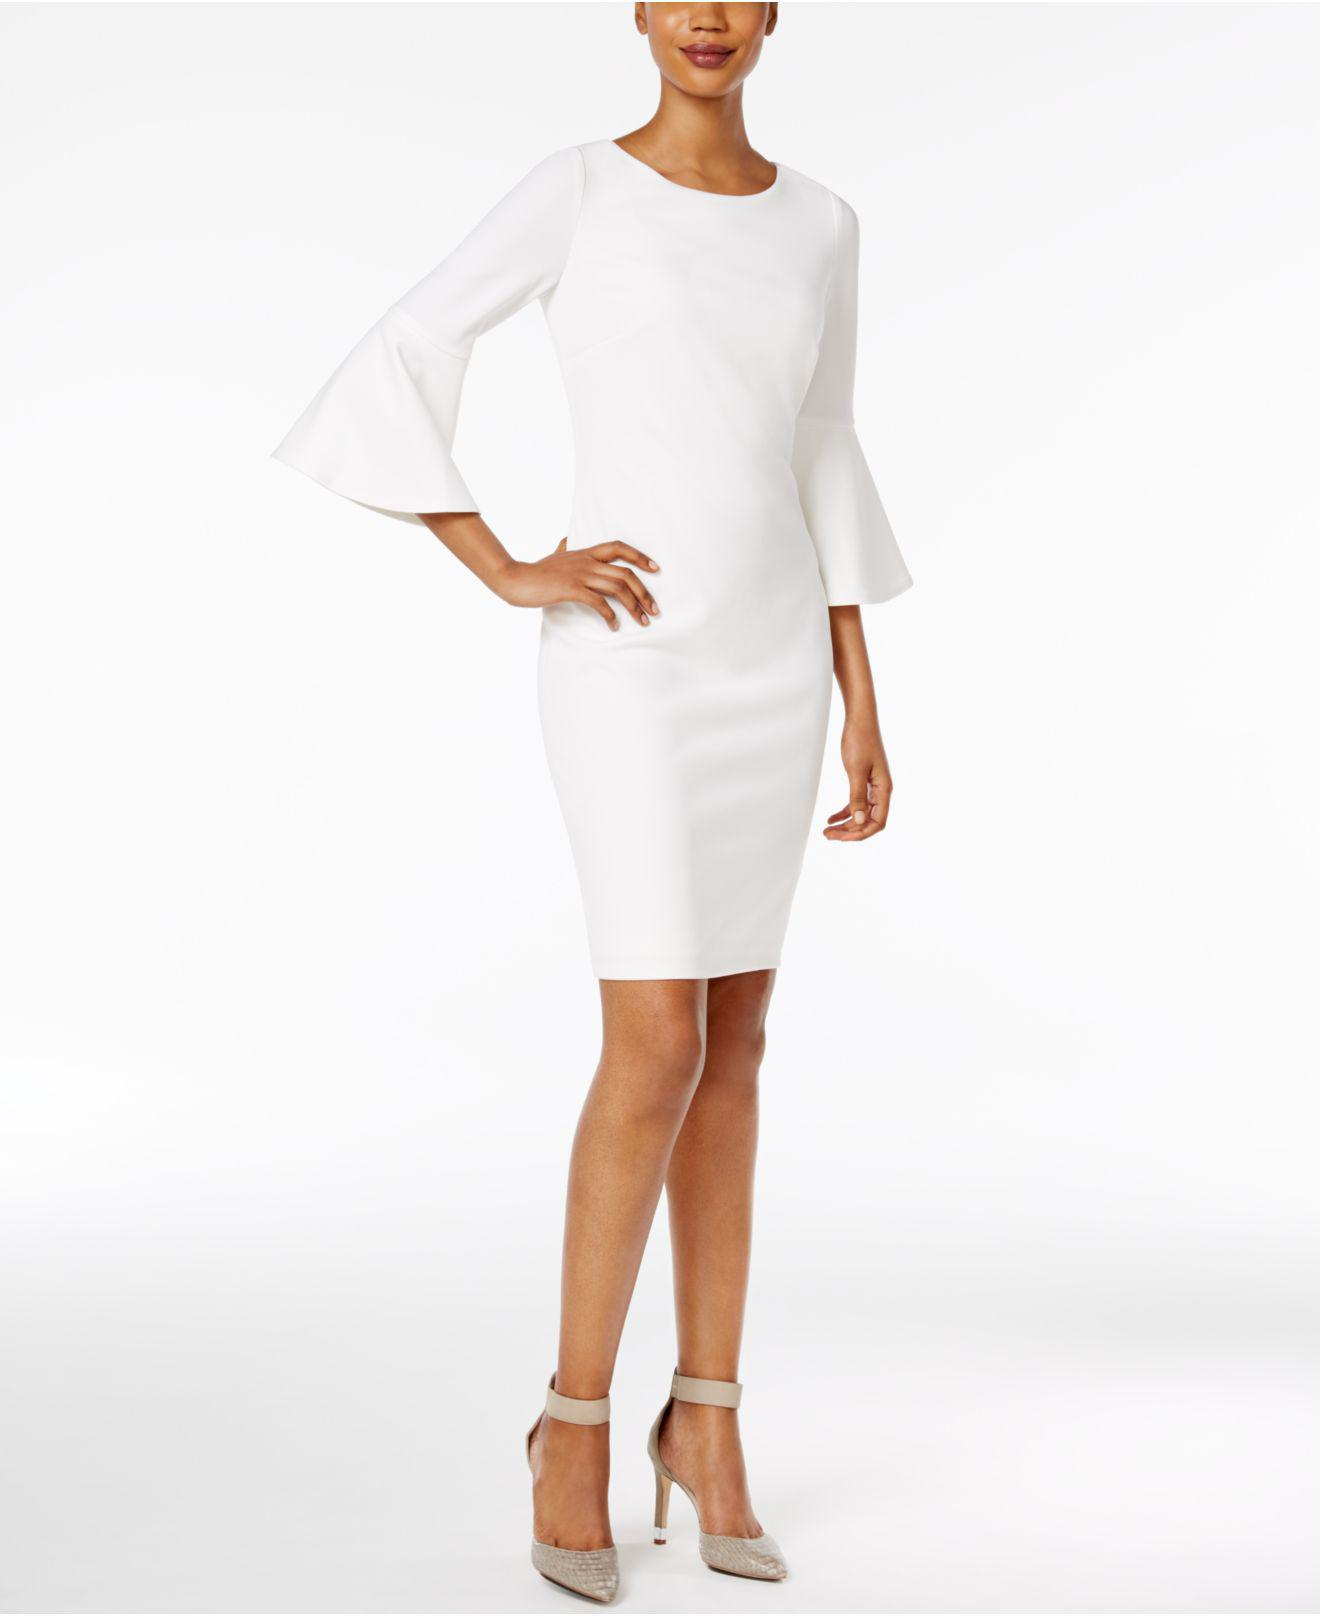 For Sale Cheap Price From China Calvin Klein 205W39nyc bell-sleeved dress Discount Reliable Buy Cheap Store Outlet Store Locations Discount Fashionable NhKQ8ZZ20n